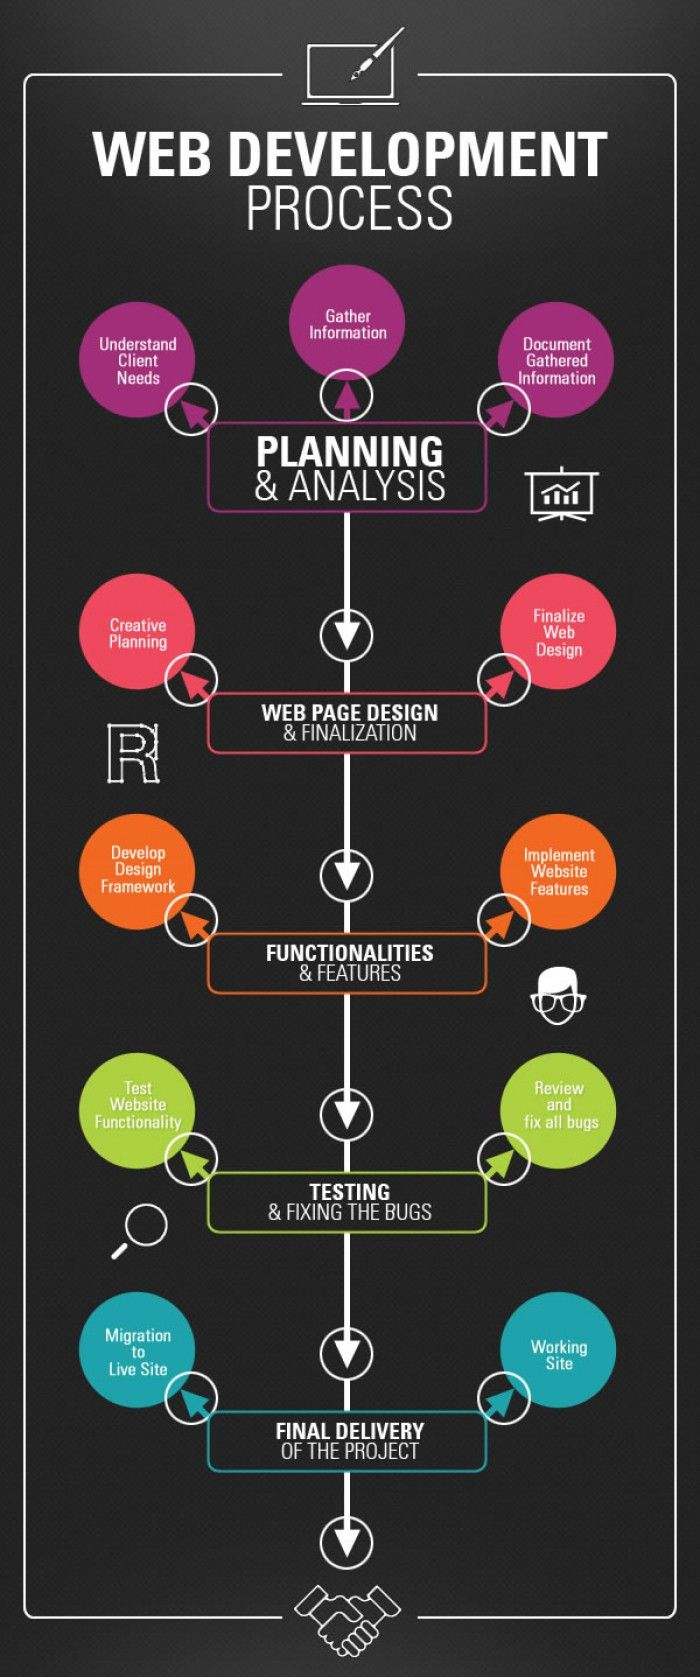 Web Design Process - Help your web site reach its full potential